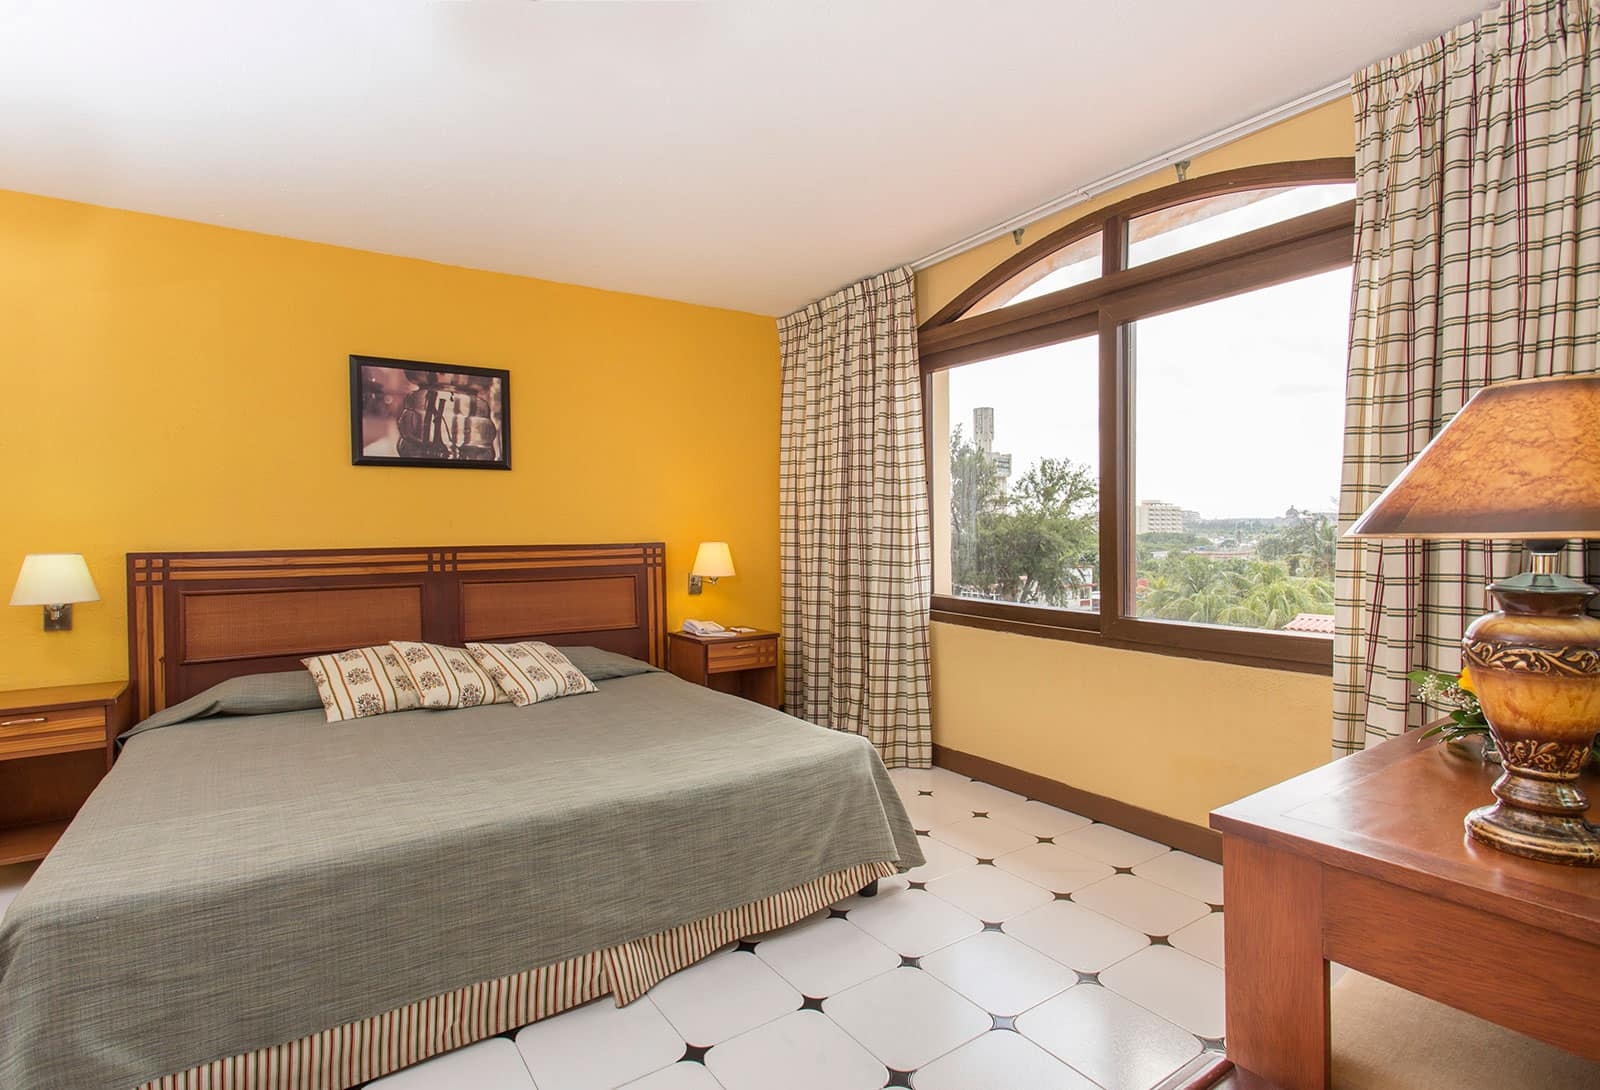 Rooms at Be Live Havana City Copacabana hotel